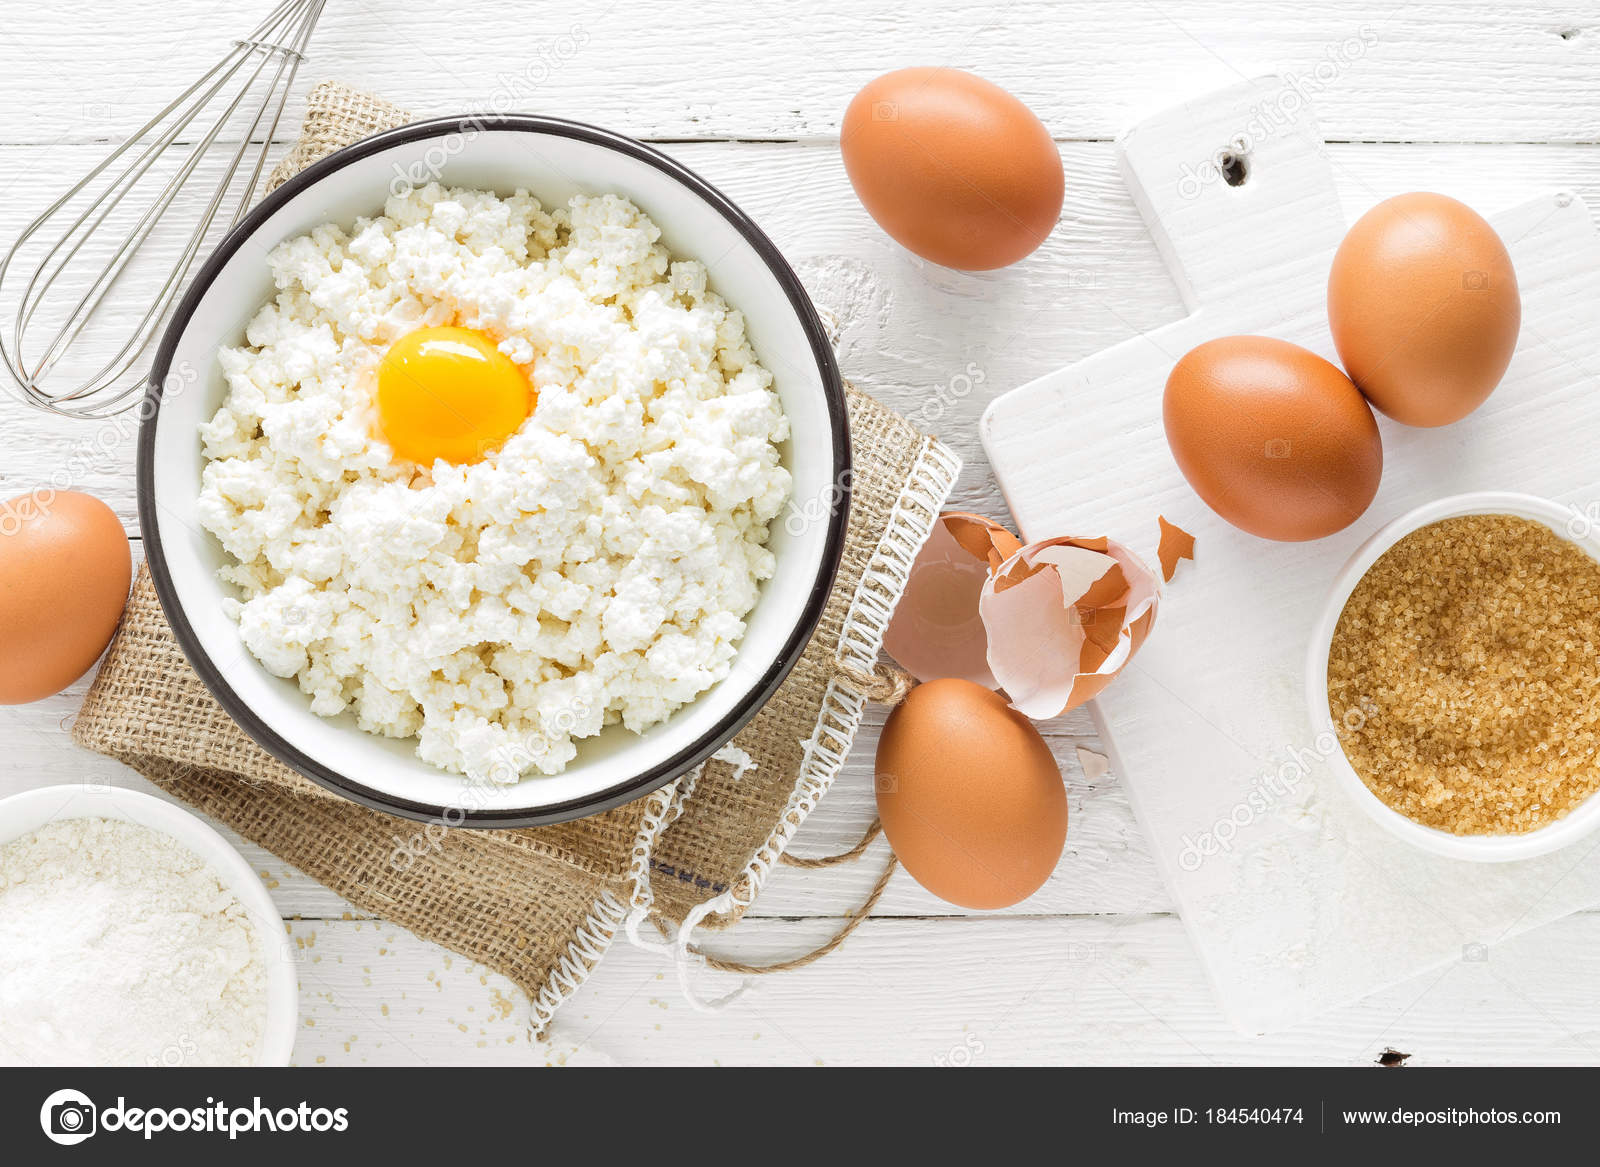 Culinary Background Ingredients Cooking Cottage Cheese Baking Flour Sugar  Eggs U2014 Stock Photo